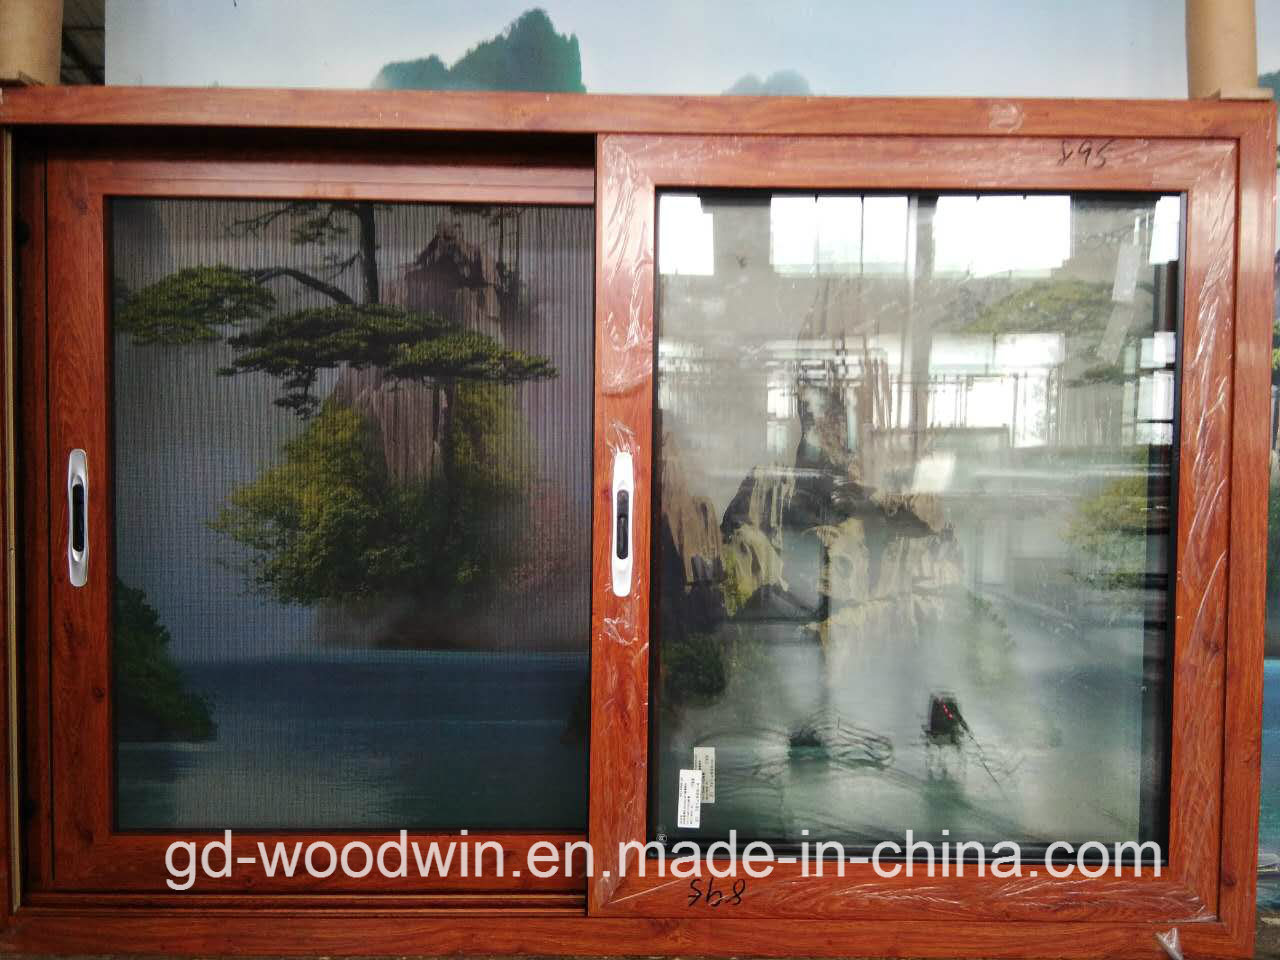 Woodwin High Quality Wood Grain Aluminum Sliding Window with Ss screen